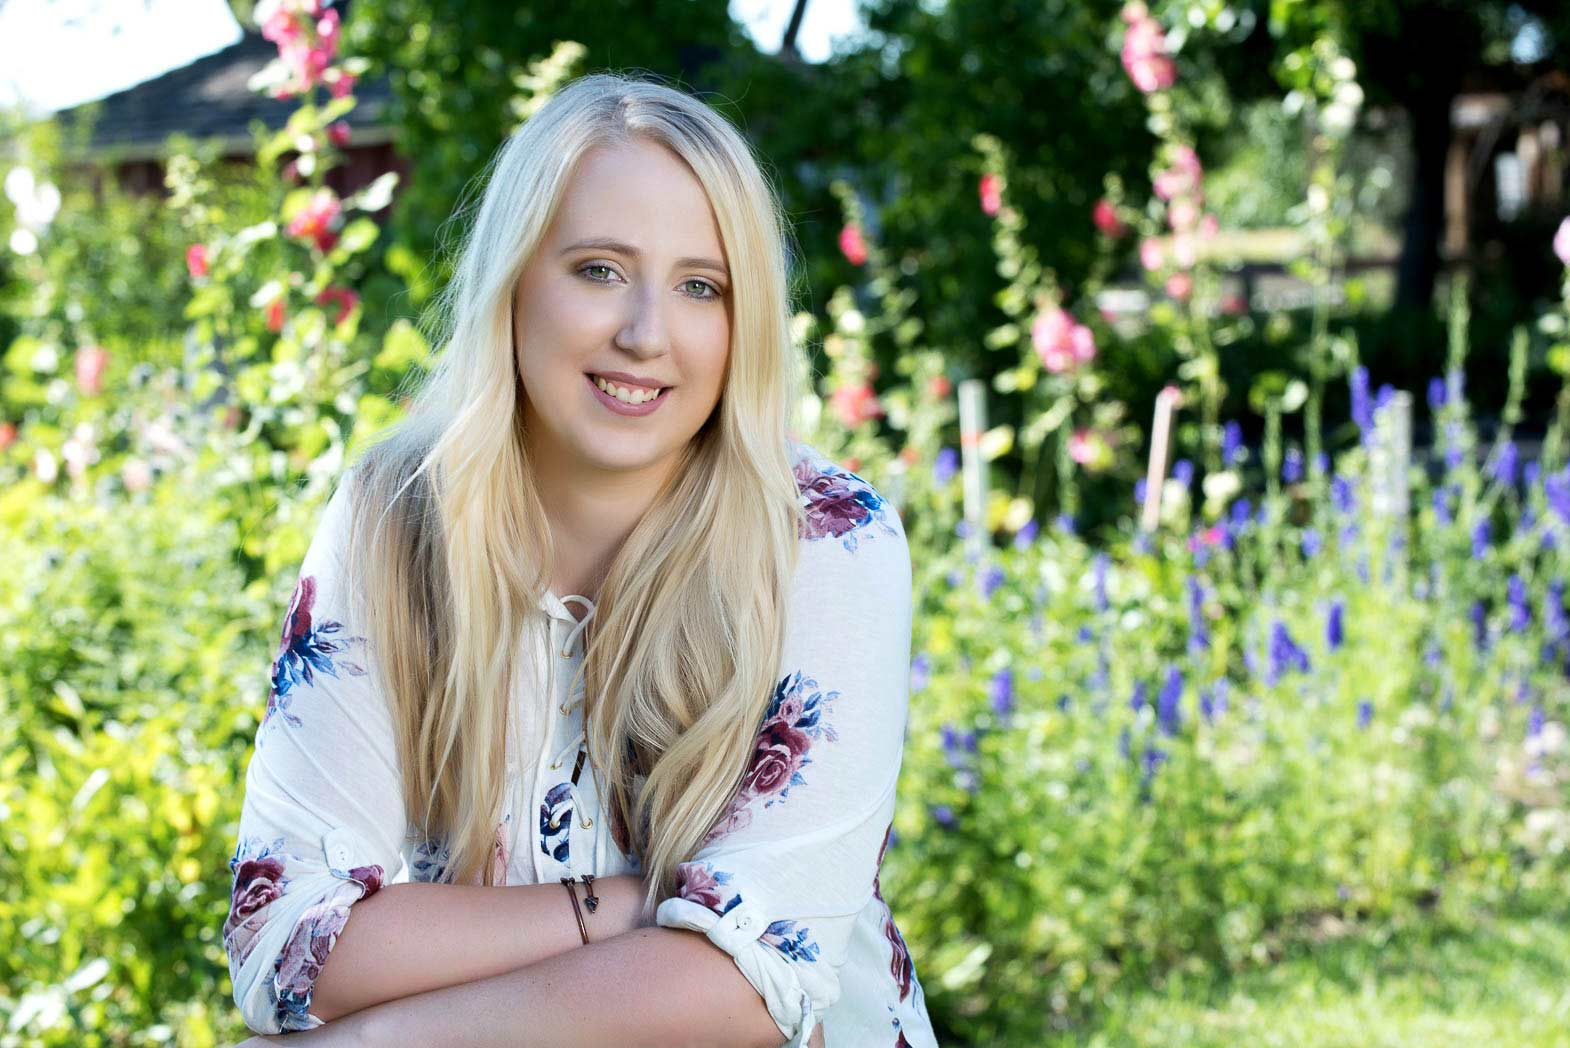 country girl senior picture of blond smiling in front of flowers and summer garden